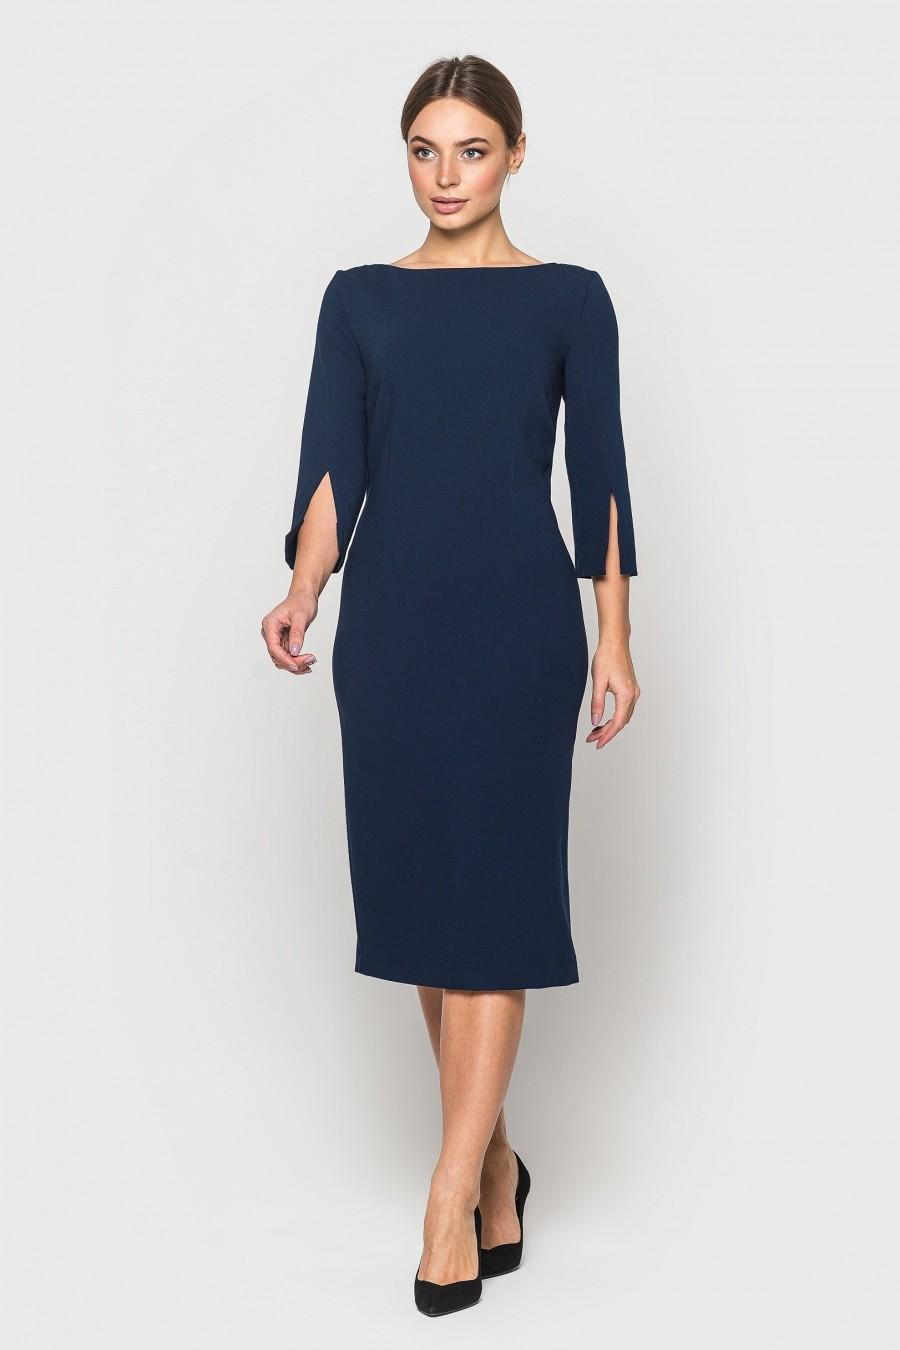 Mariage - Elegant dress AUDREY for every day or business, U-Boat neck and 3/4 long sleeves